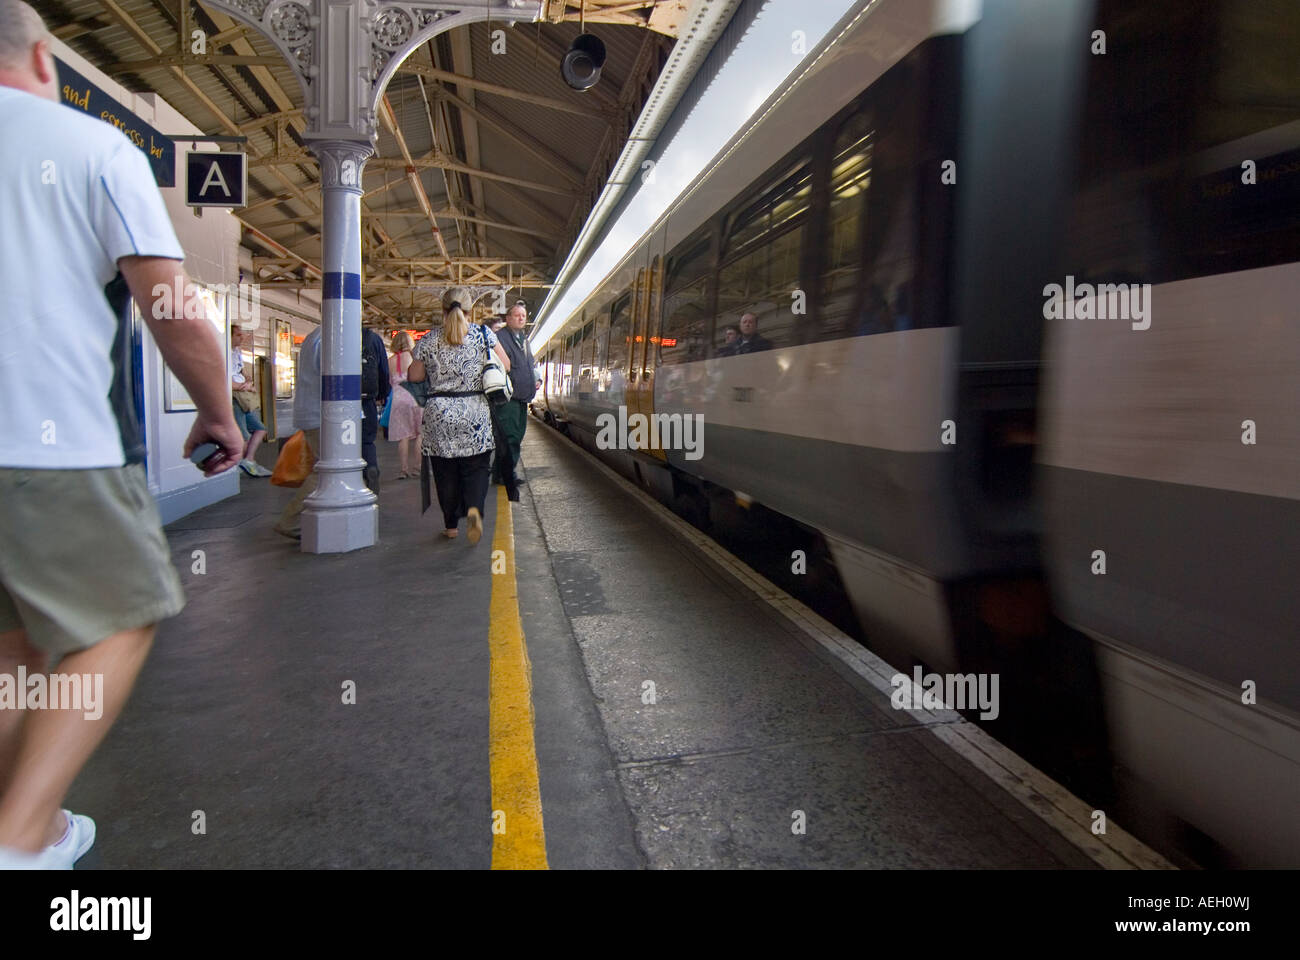 Horizontal wide angle of people rushing to catch a train arriving at the platform. - Stock Image